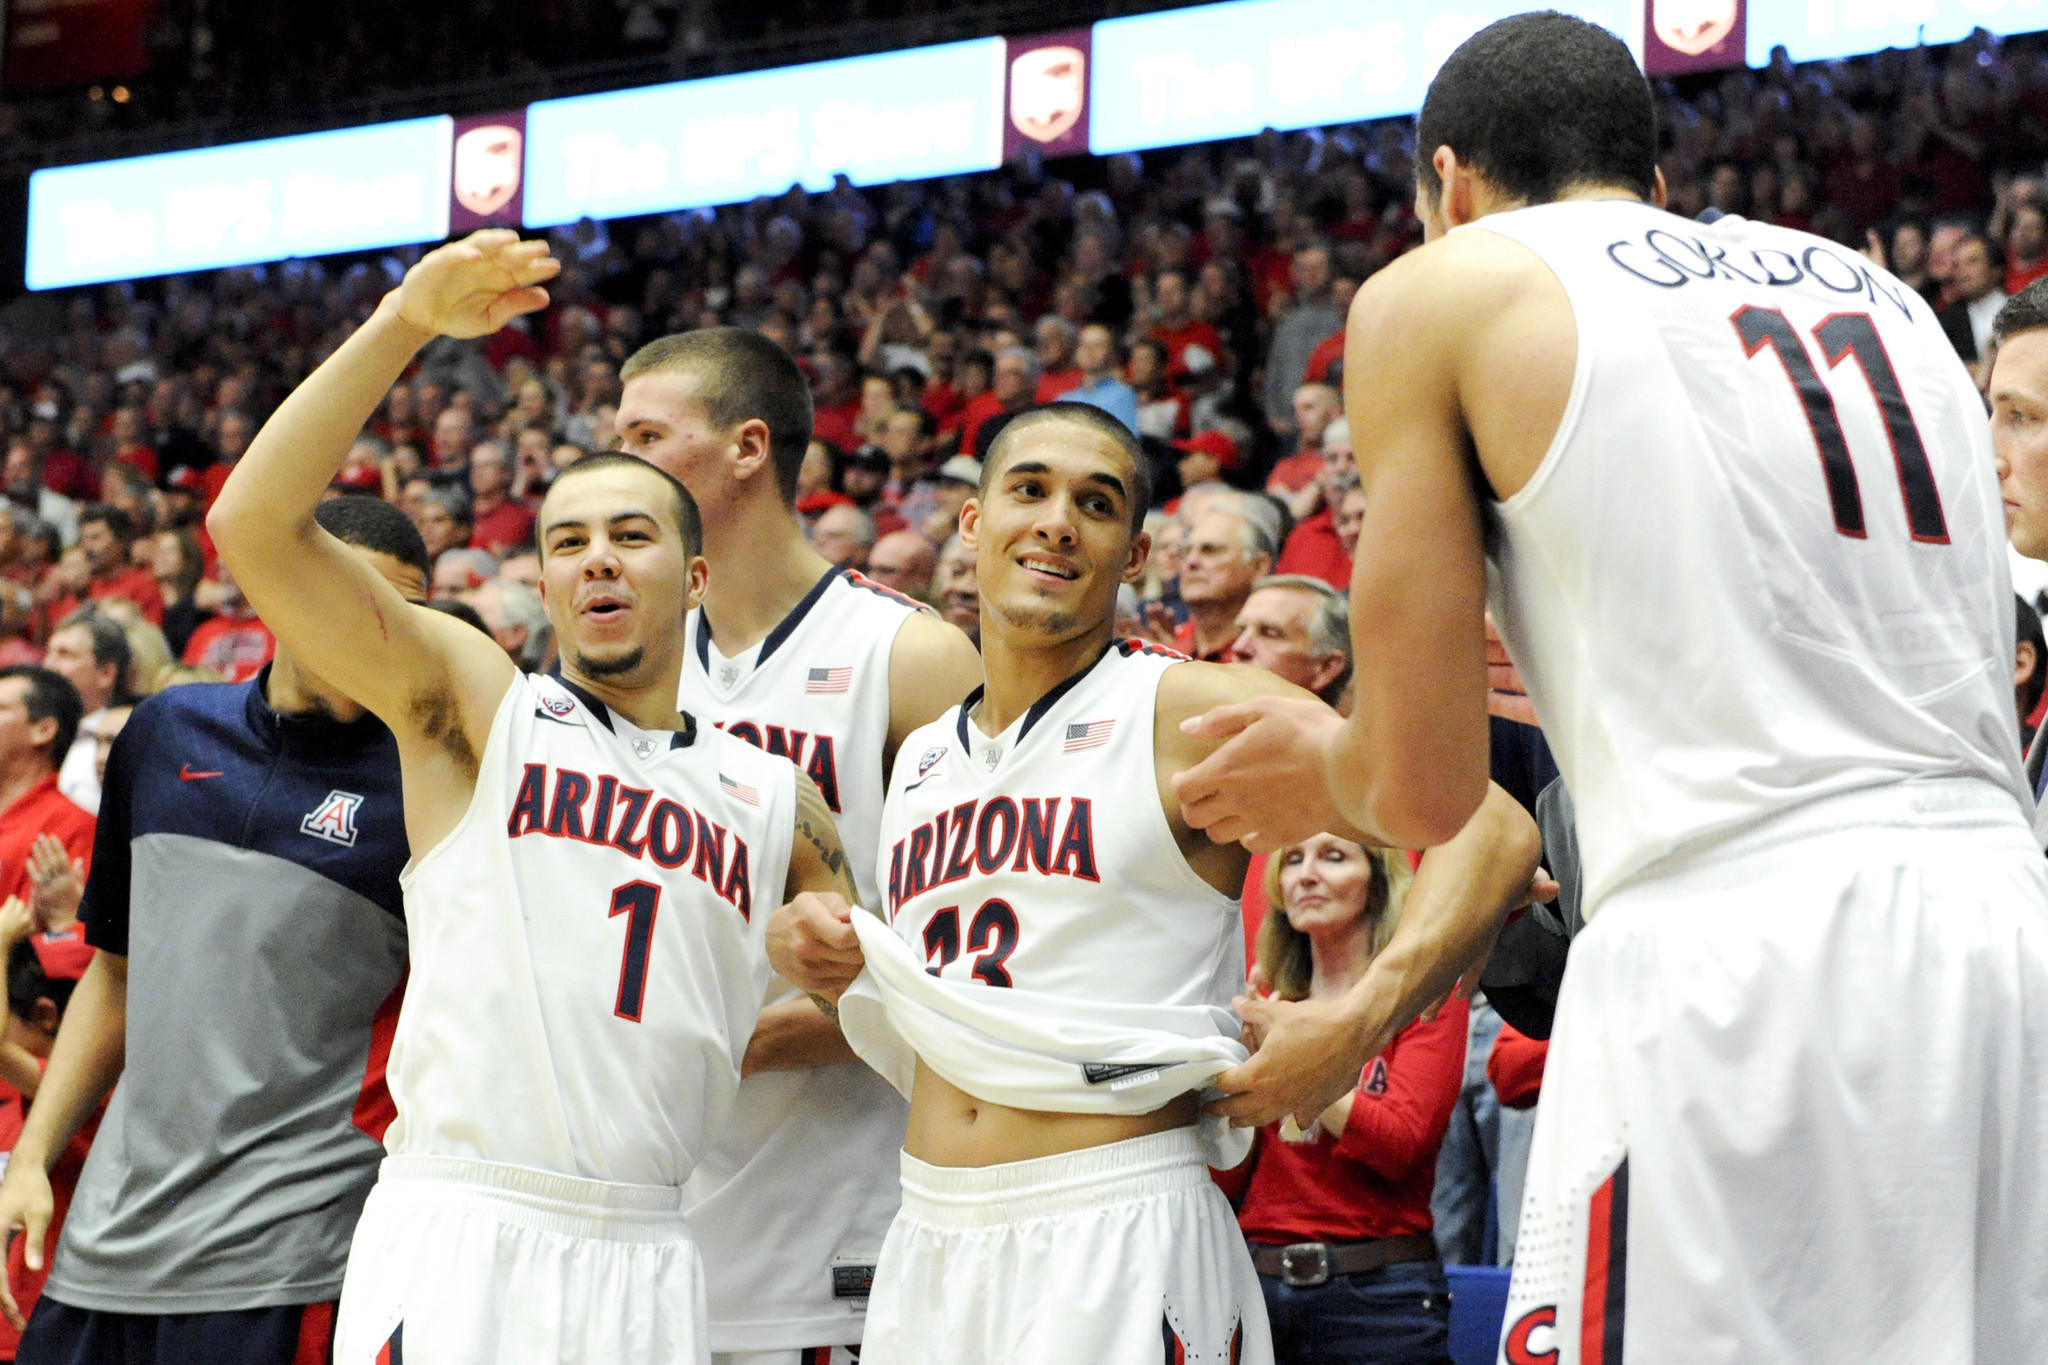 Arizona's Gabe York and Nick Johnson celebrate on the bench during the second half.